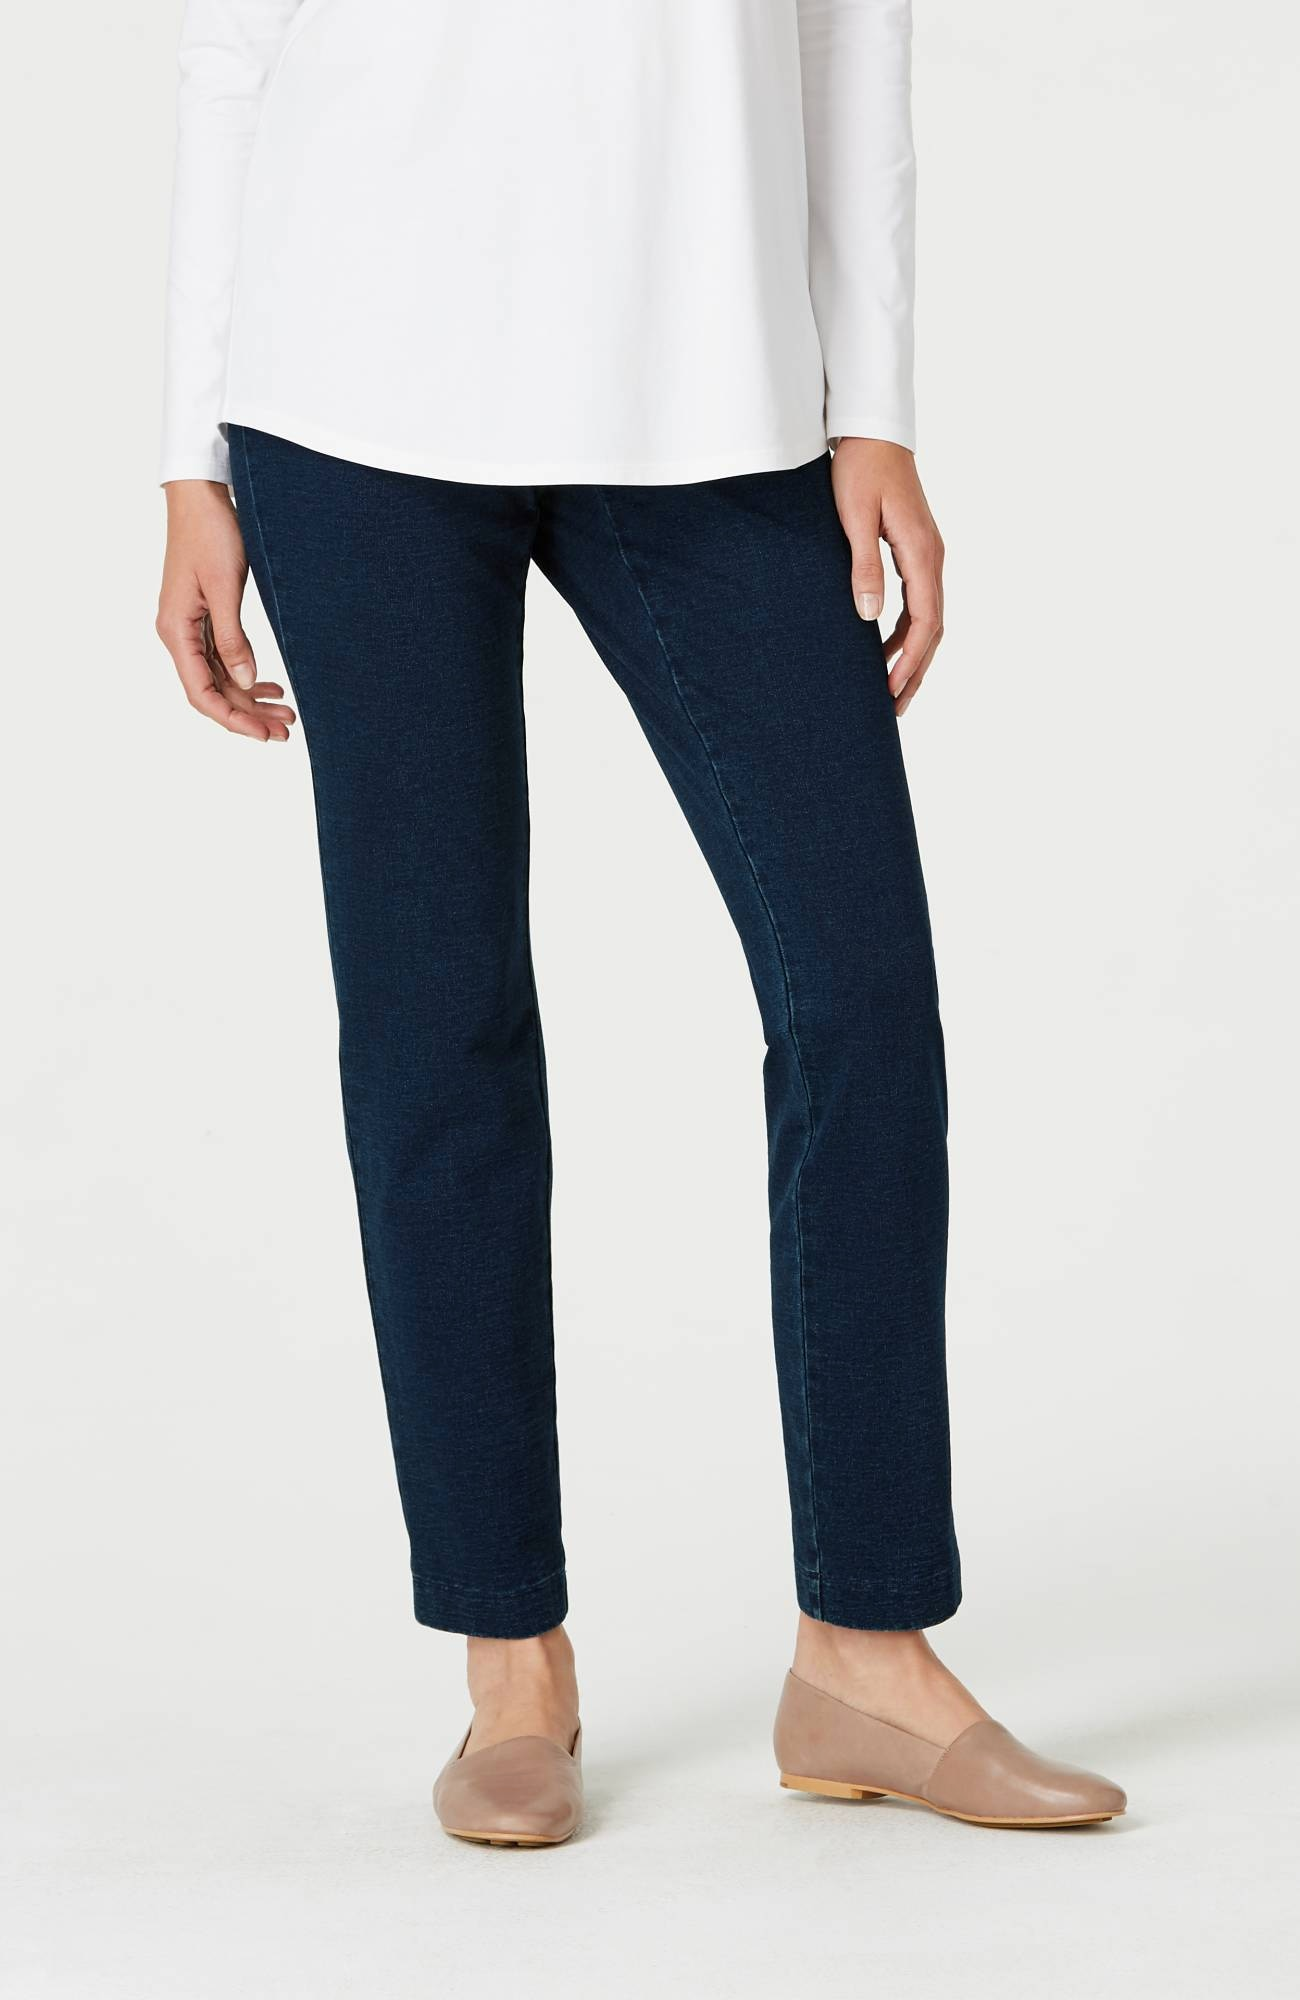 Pure Jill indigo knit tapered pants